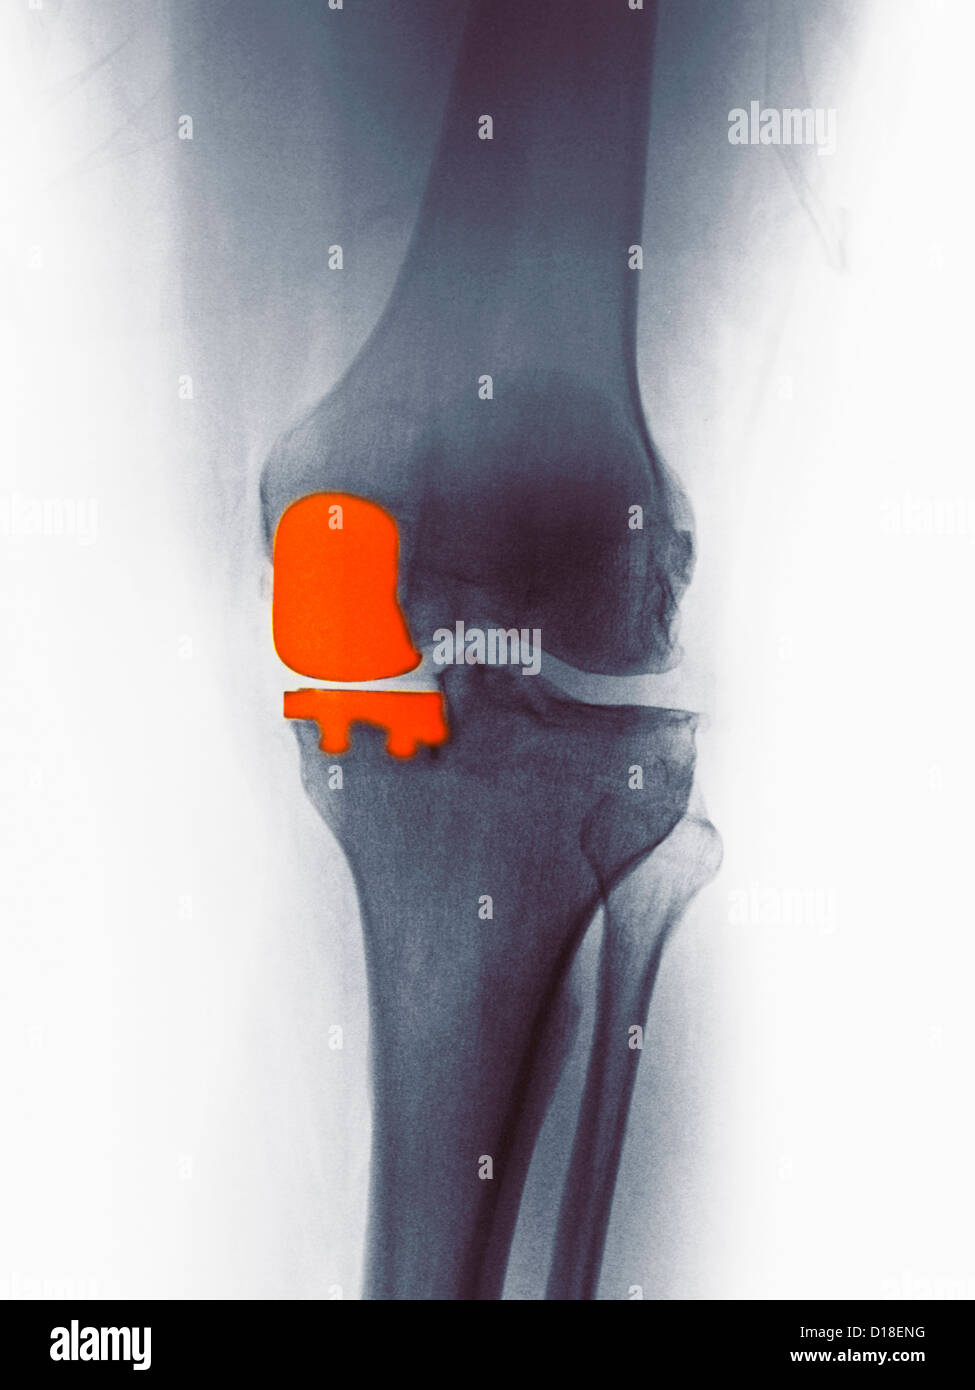 Knee X-ray, partial knee replacement - Stock Image